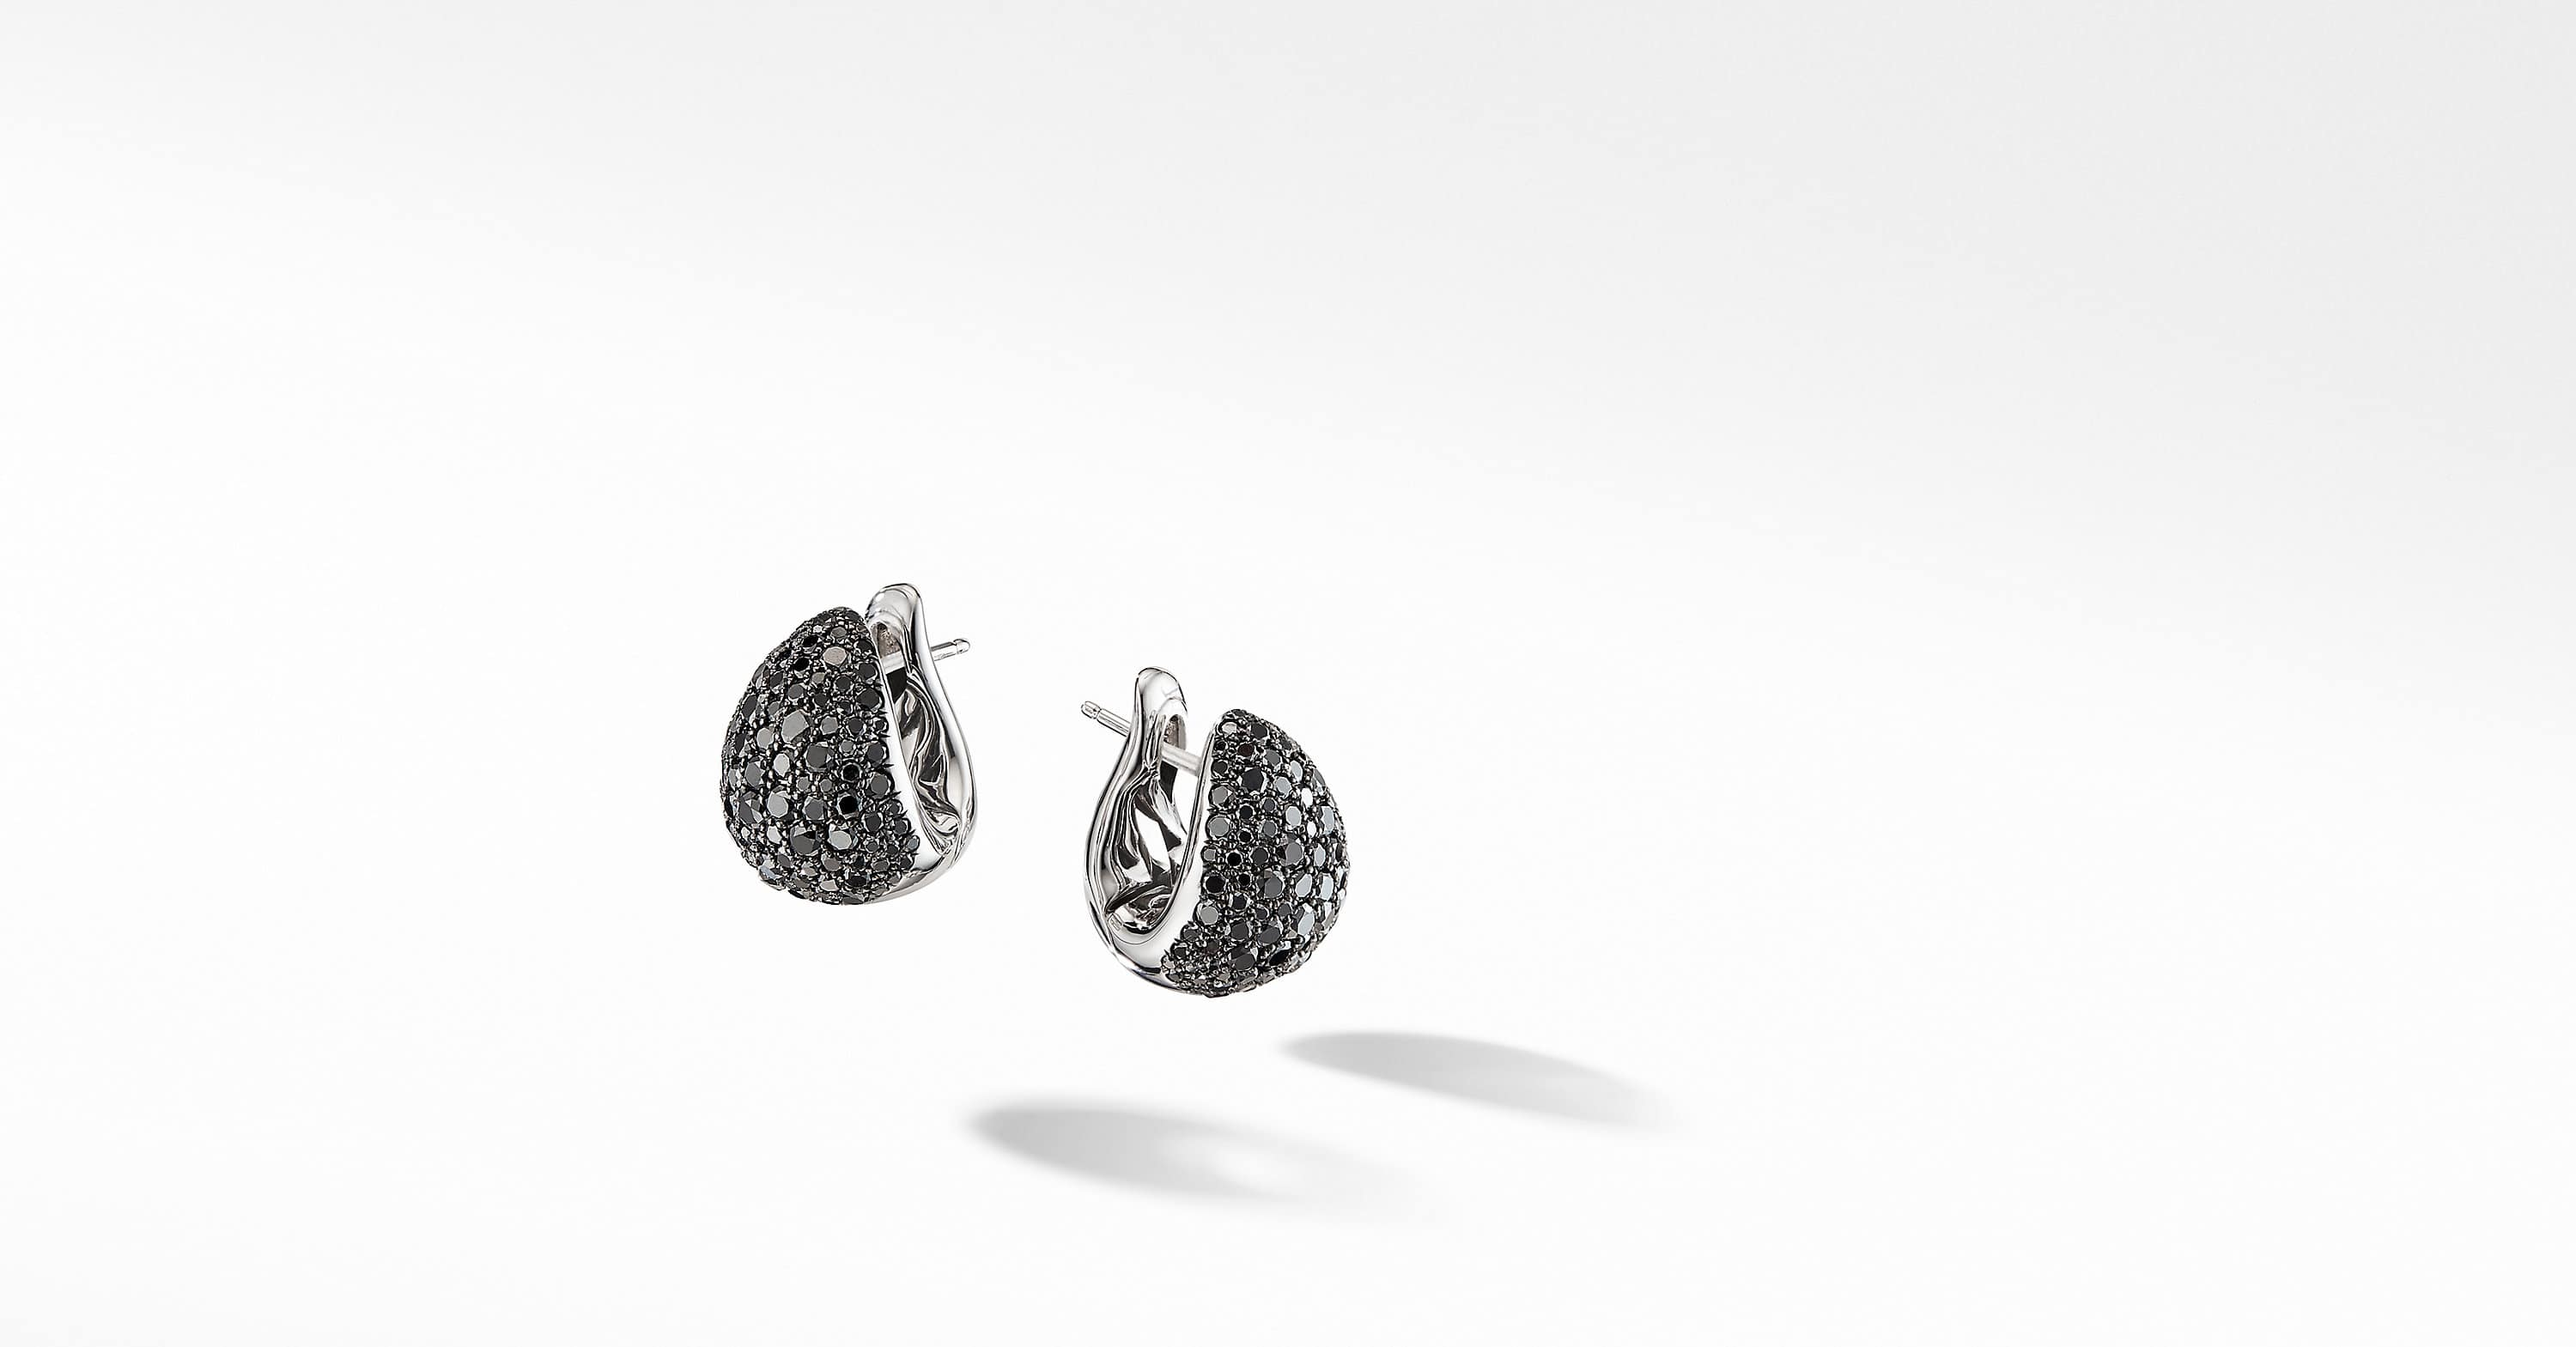 Pear Huggie Hoop Earrings in 18K White Gold with Pavé